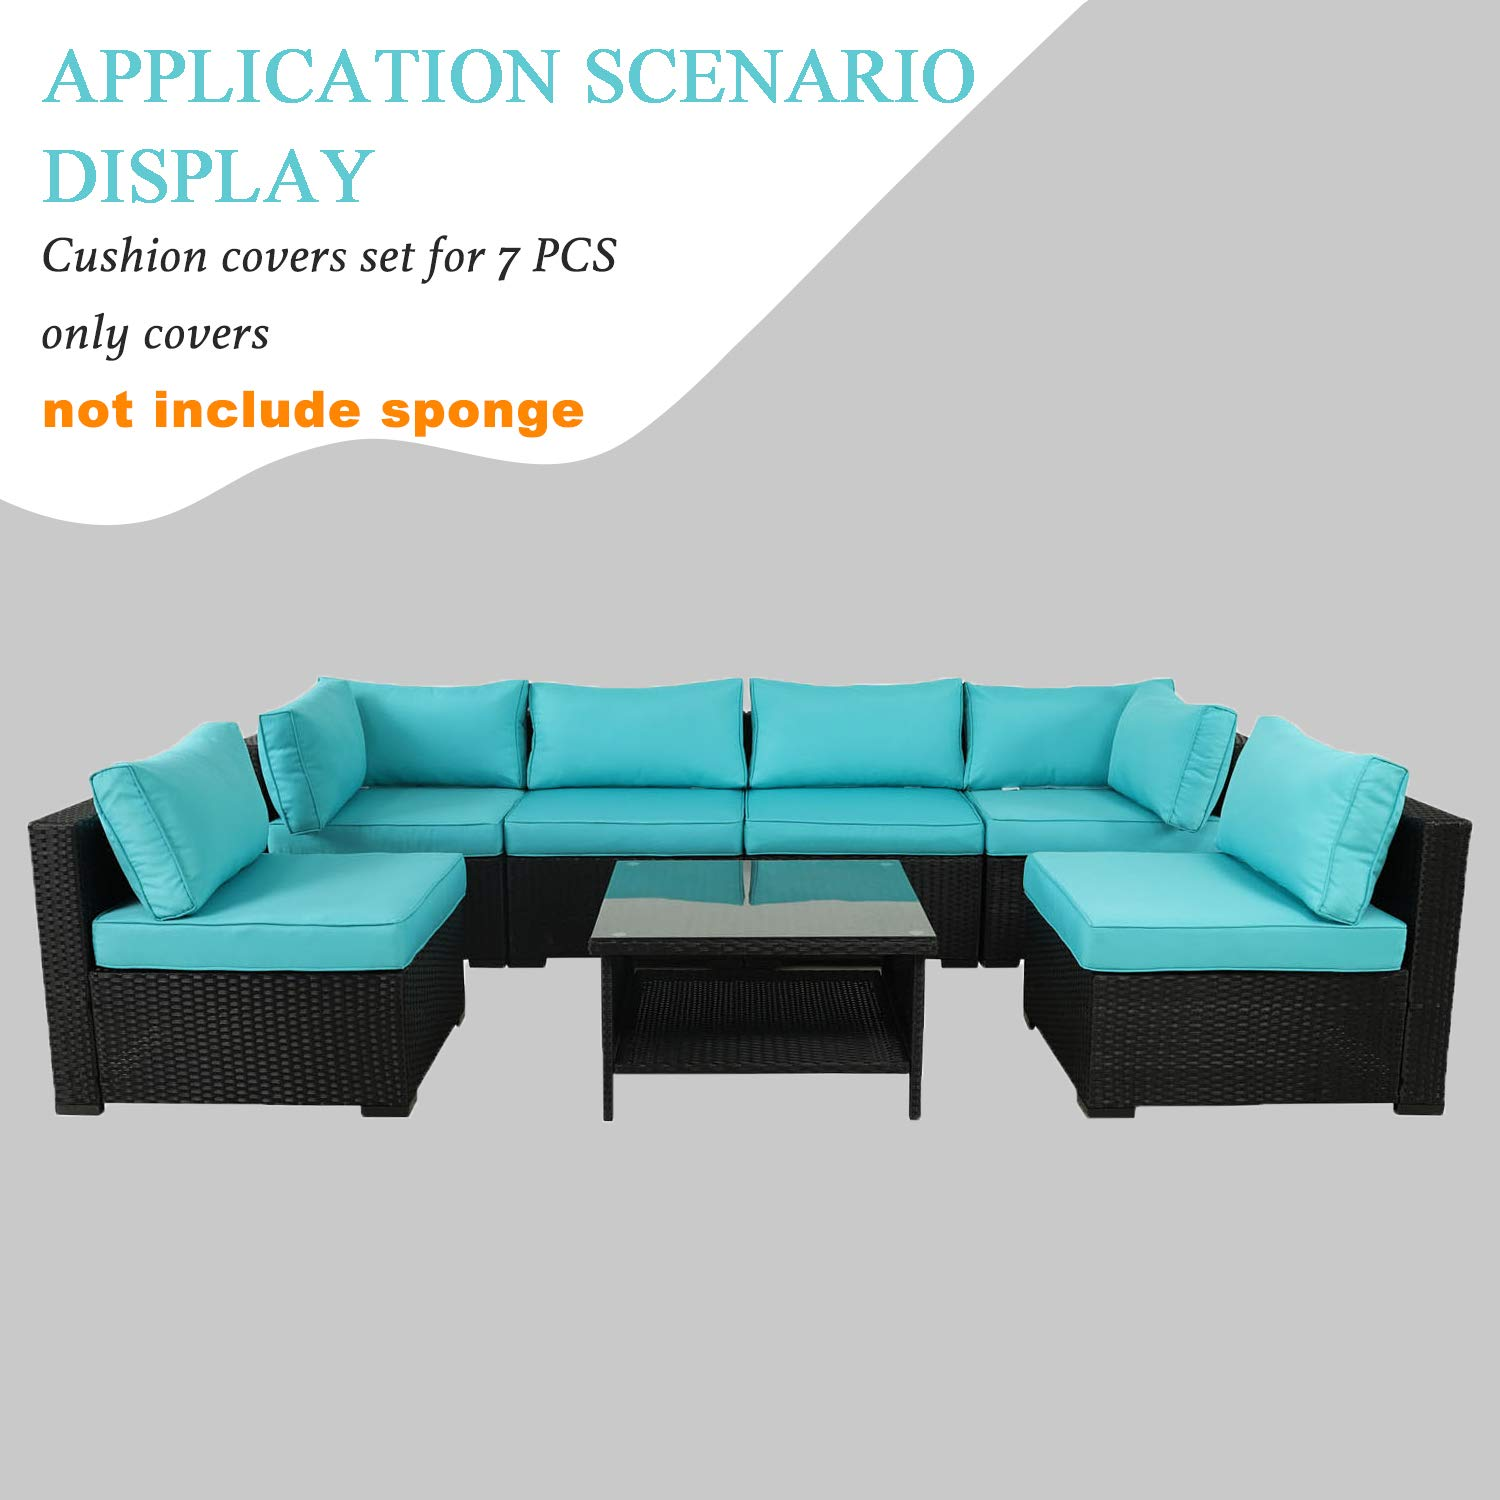 VALITA 7 PCS Outdoor Replacement Cushion Cover Set with Zipper for Sectional Chair Sofa Furniture, Turquoise